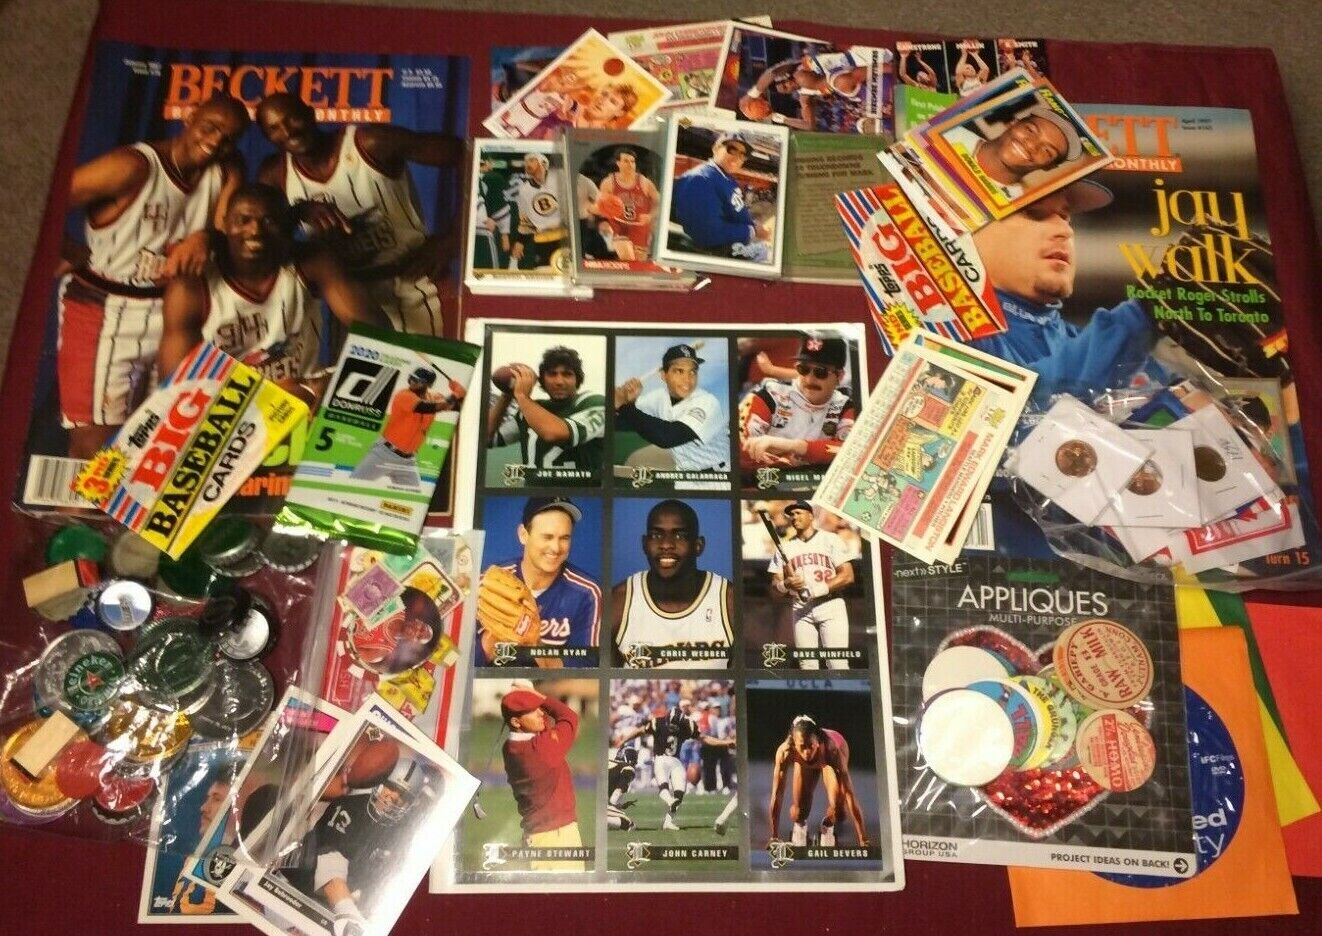 Huge junk drawer lot of collectibles, trading cards & misc items #09-01-1